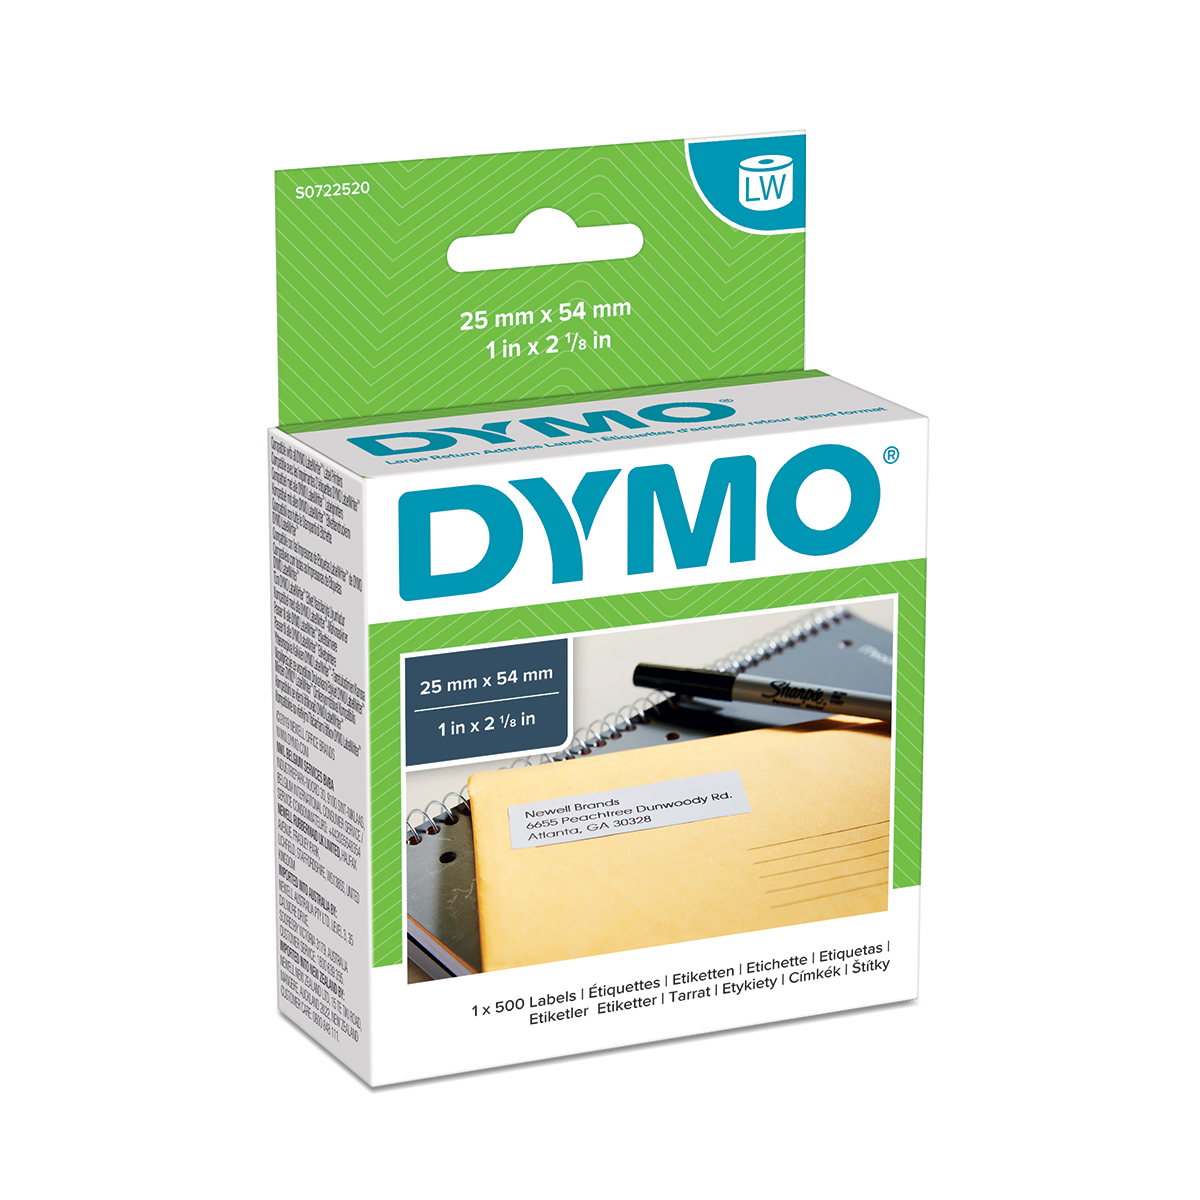 Dymo 11352 25mm x 54mm Returns Labels Tape Black On White